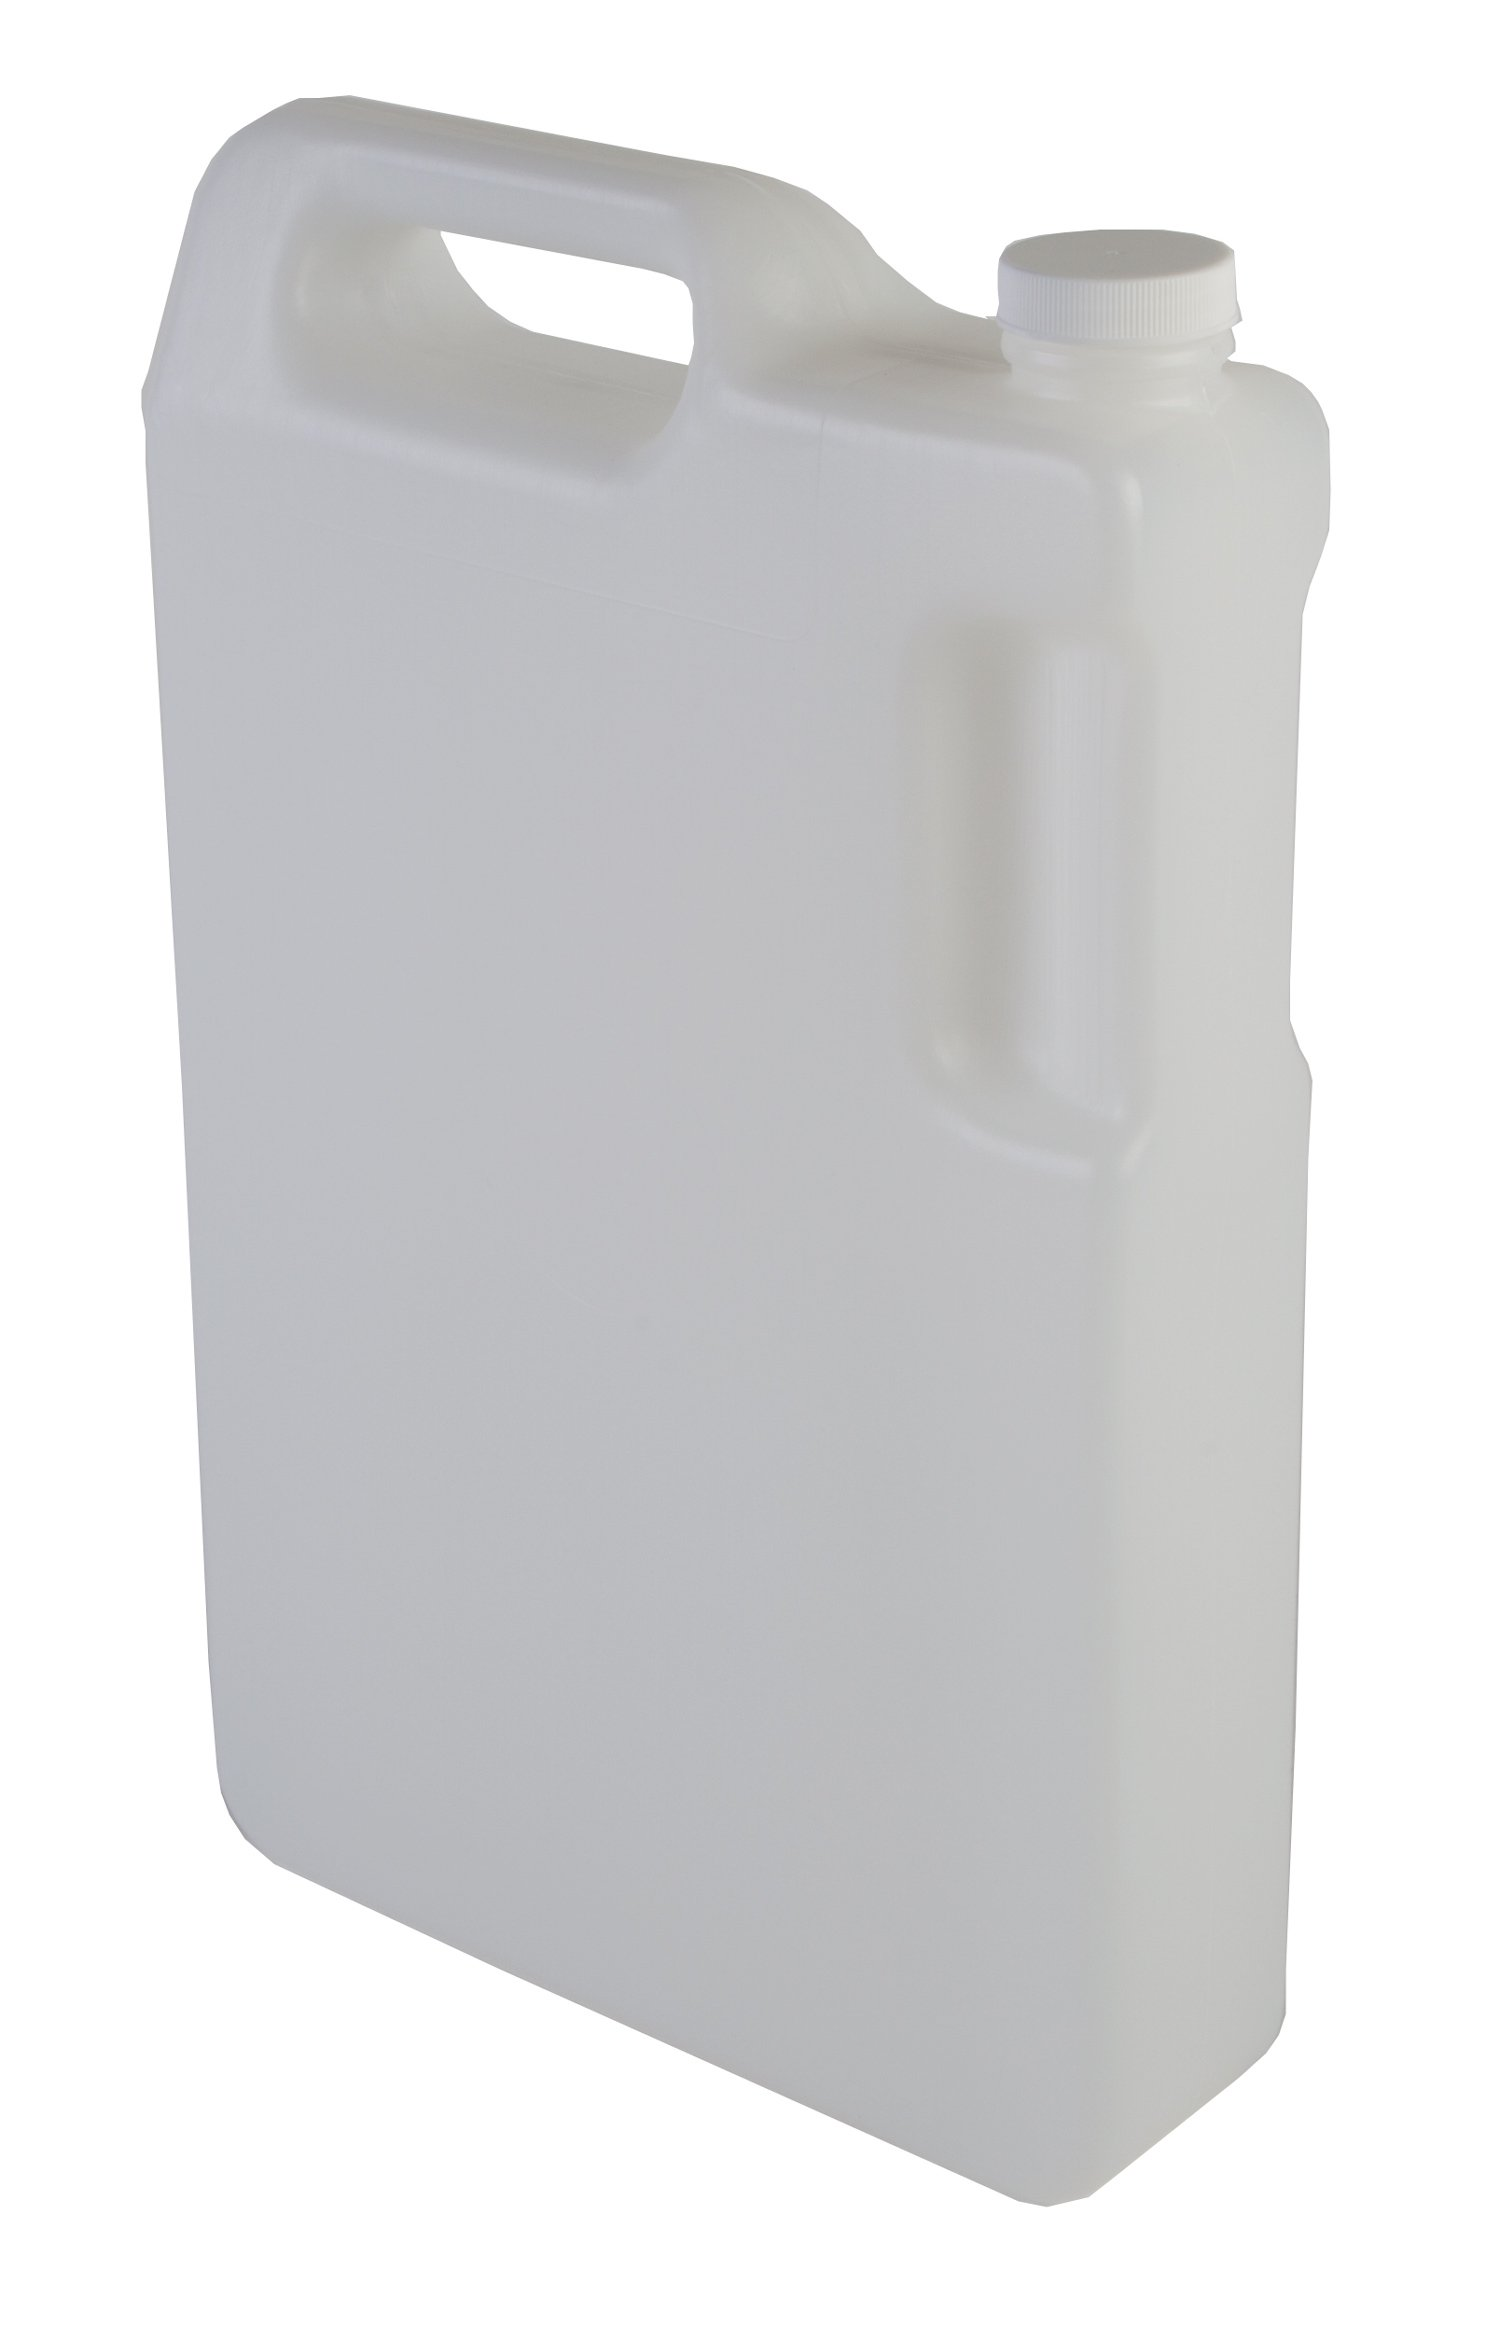 Hudson Exchange 5 Liter Hedpak Container with Cap, HDPE, Natural